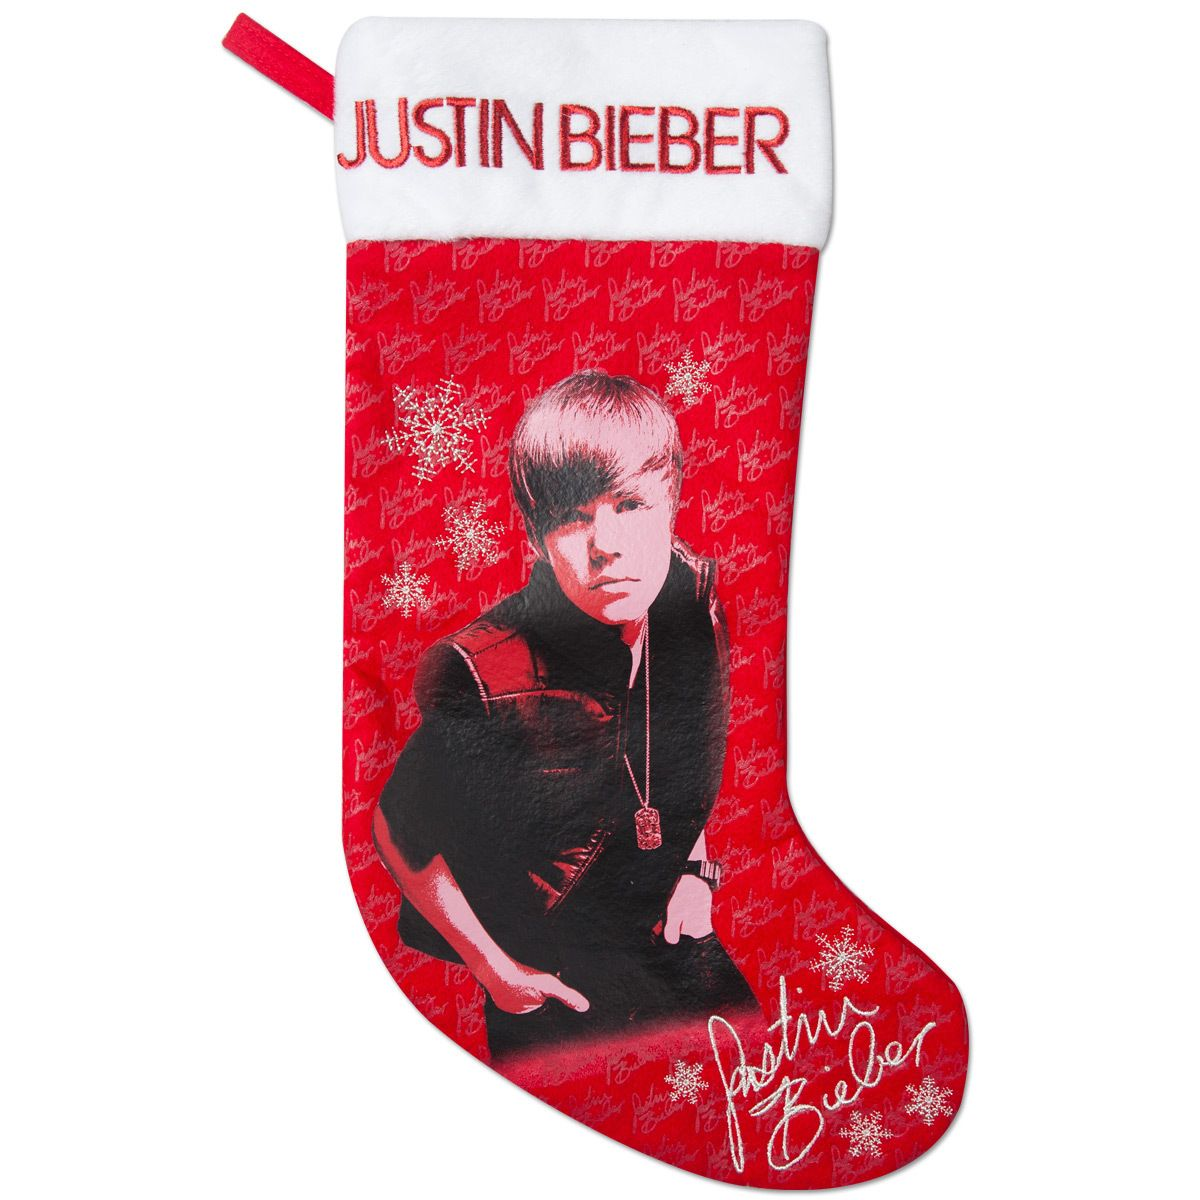 A Bieber Christmas stocking is horrific.   Make this Holiday Sexy by winning #Gifts from #EdenFantasys !